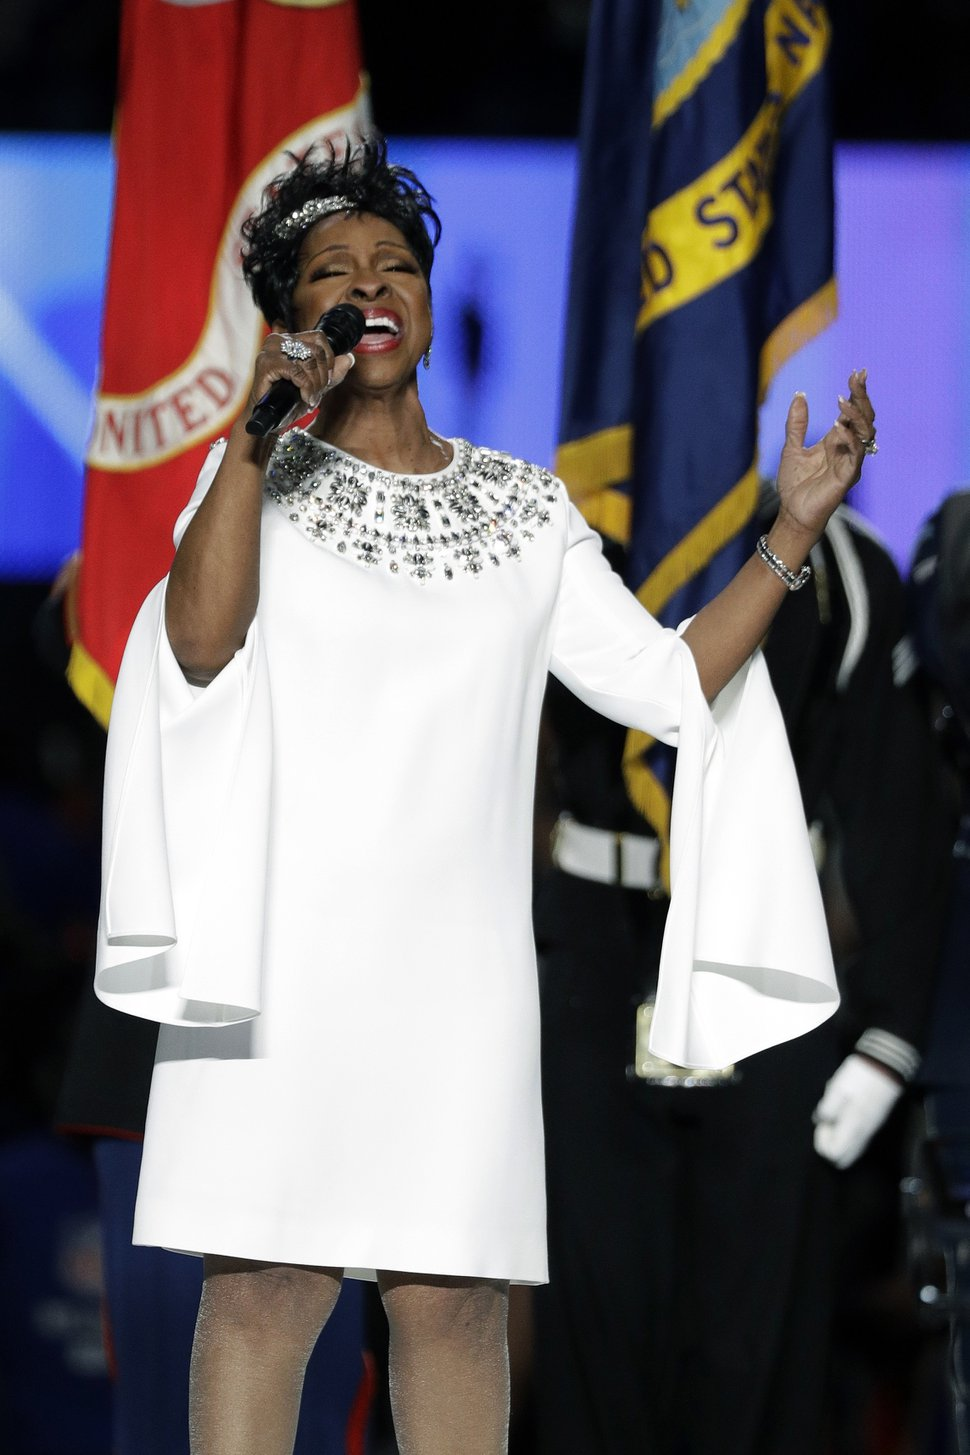 (AP Photo/David J. Phillip) Gladys Knight sings the national anthem before the Super Bowl on Sunday, Feb. 3, 2019, in Atlanta.